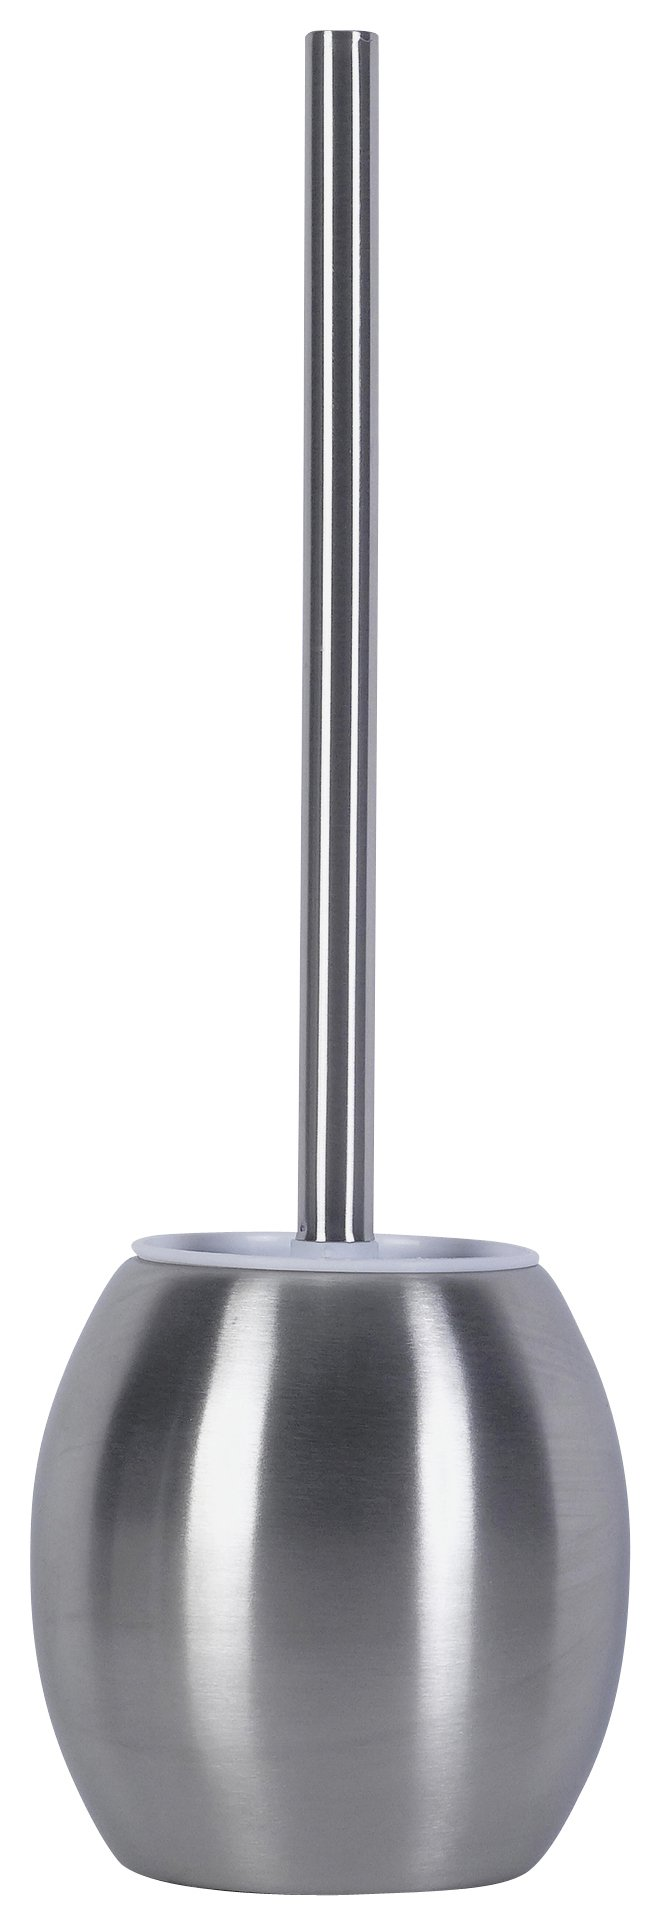 Argos Home Toilet Brush Holder - Stainless Steel